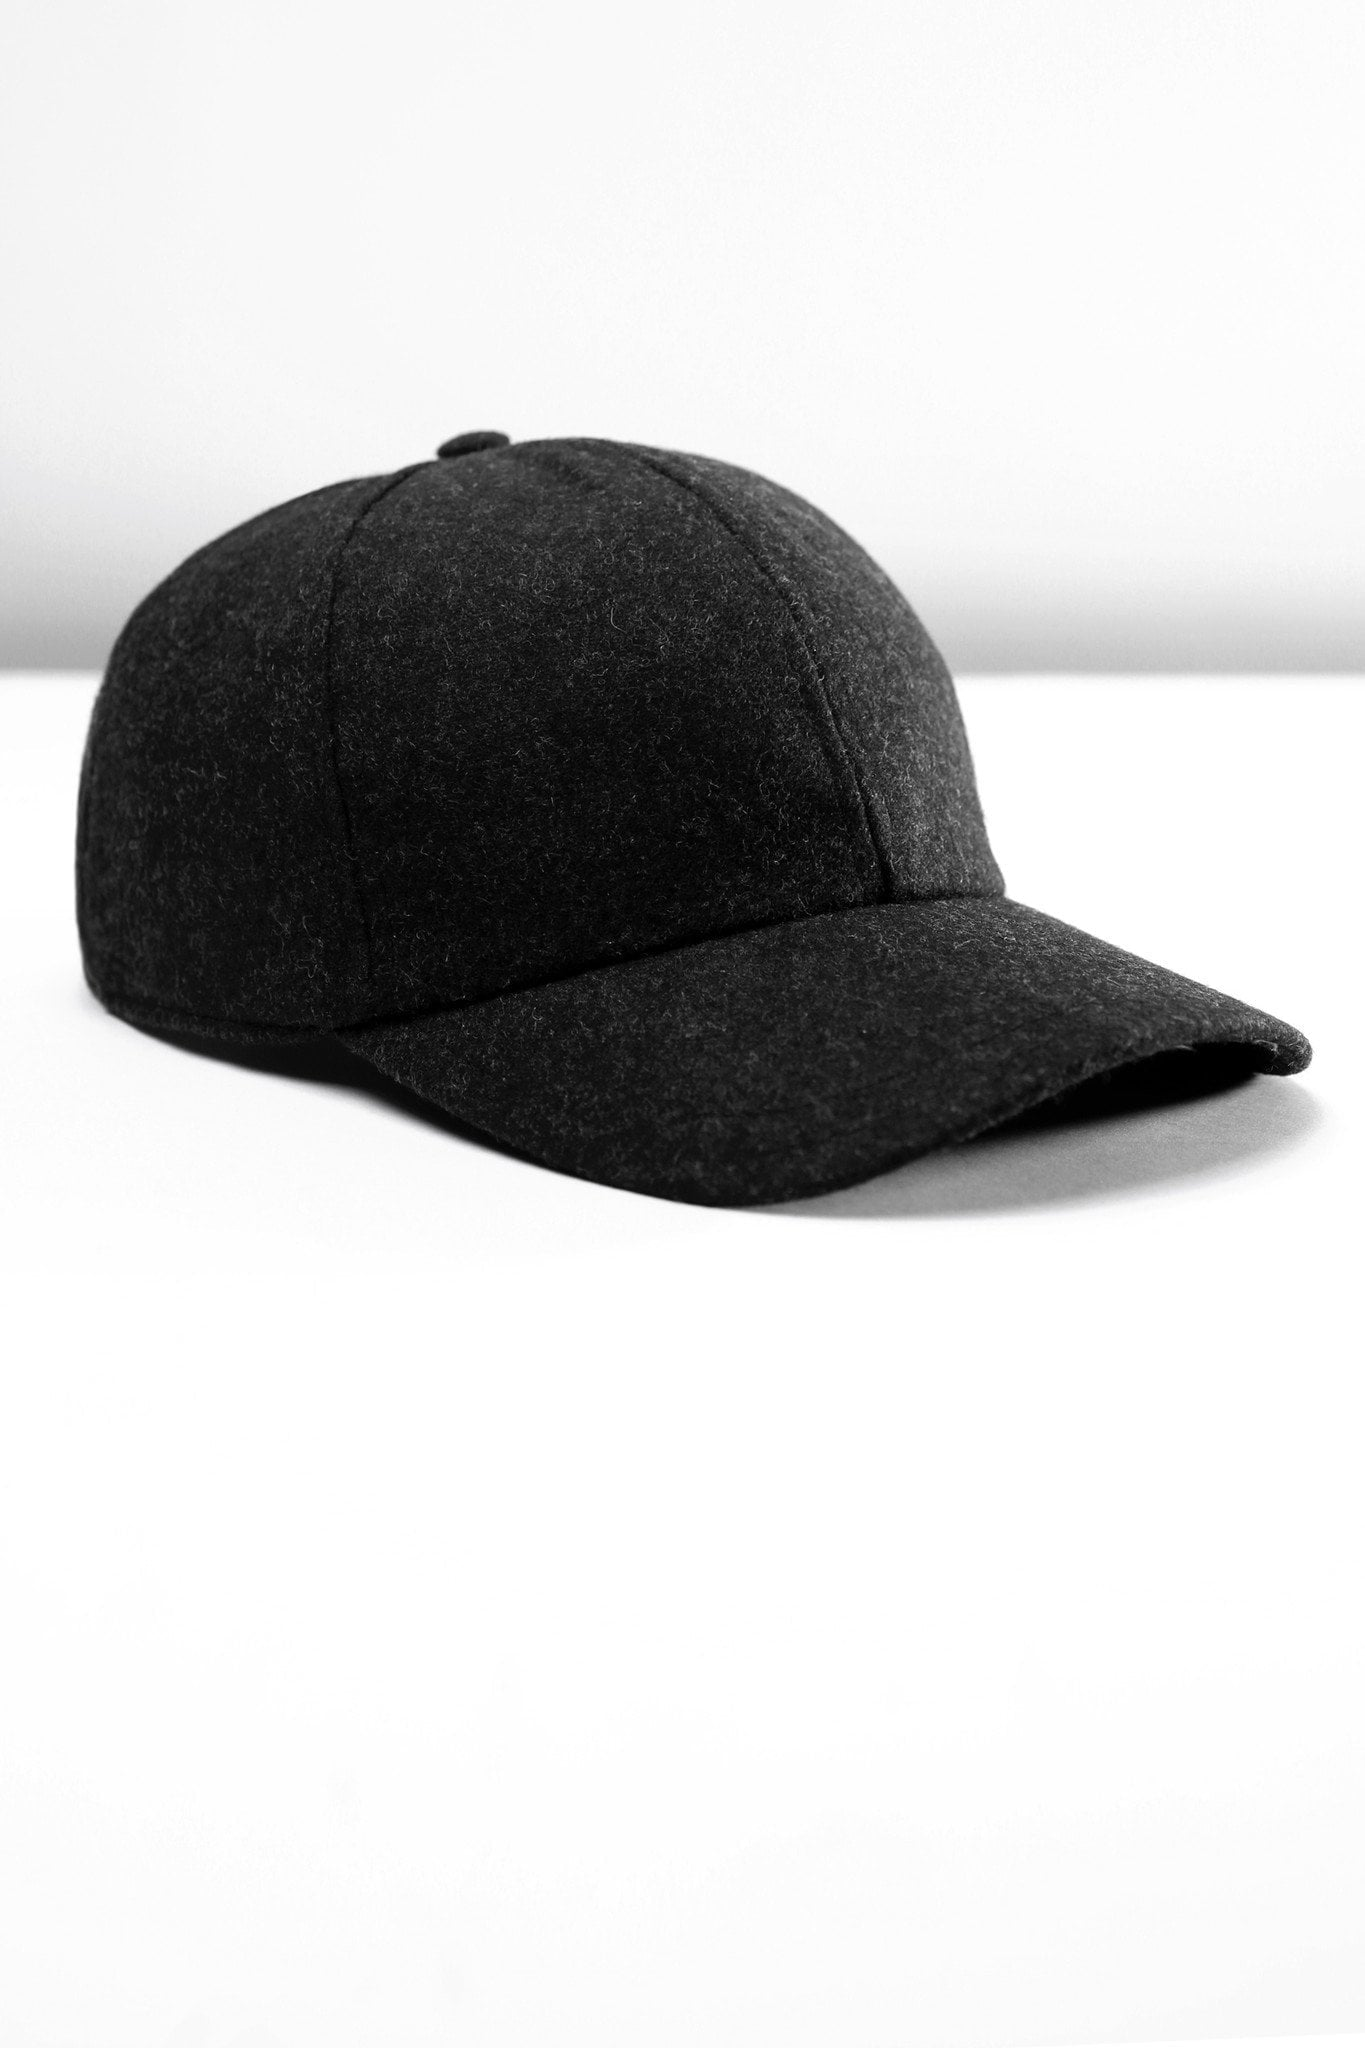 Caps - dark gray